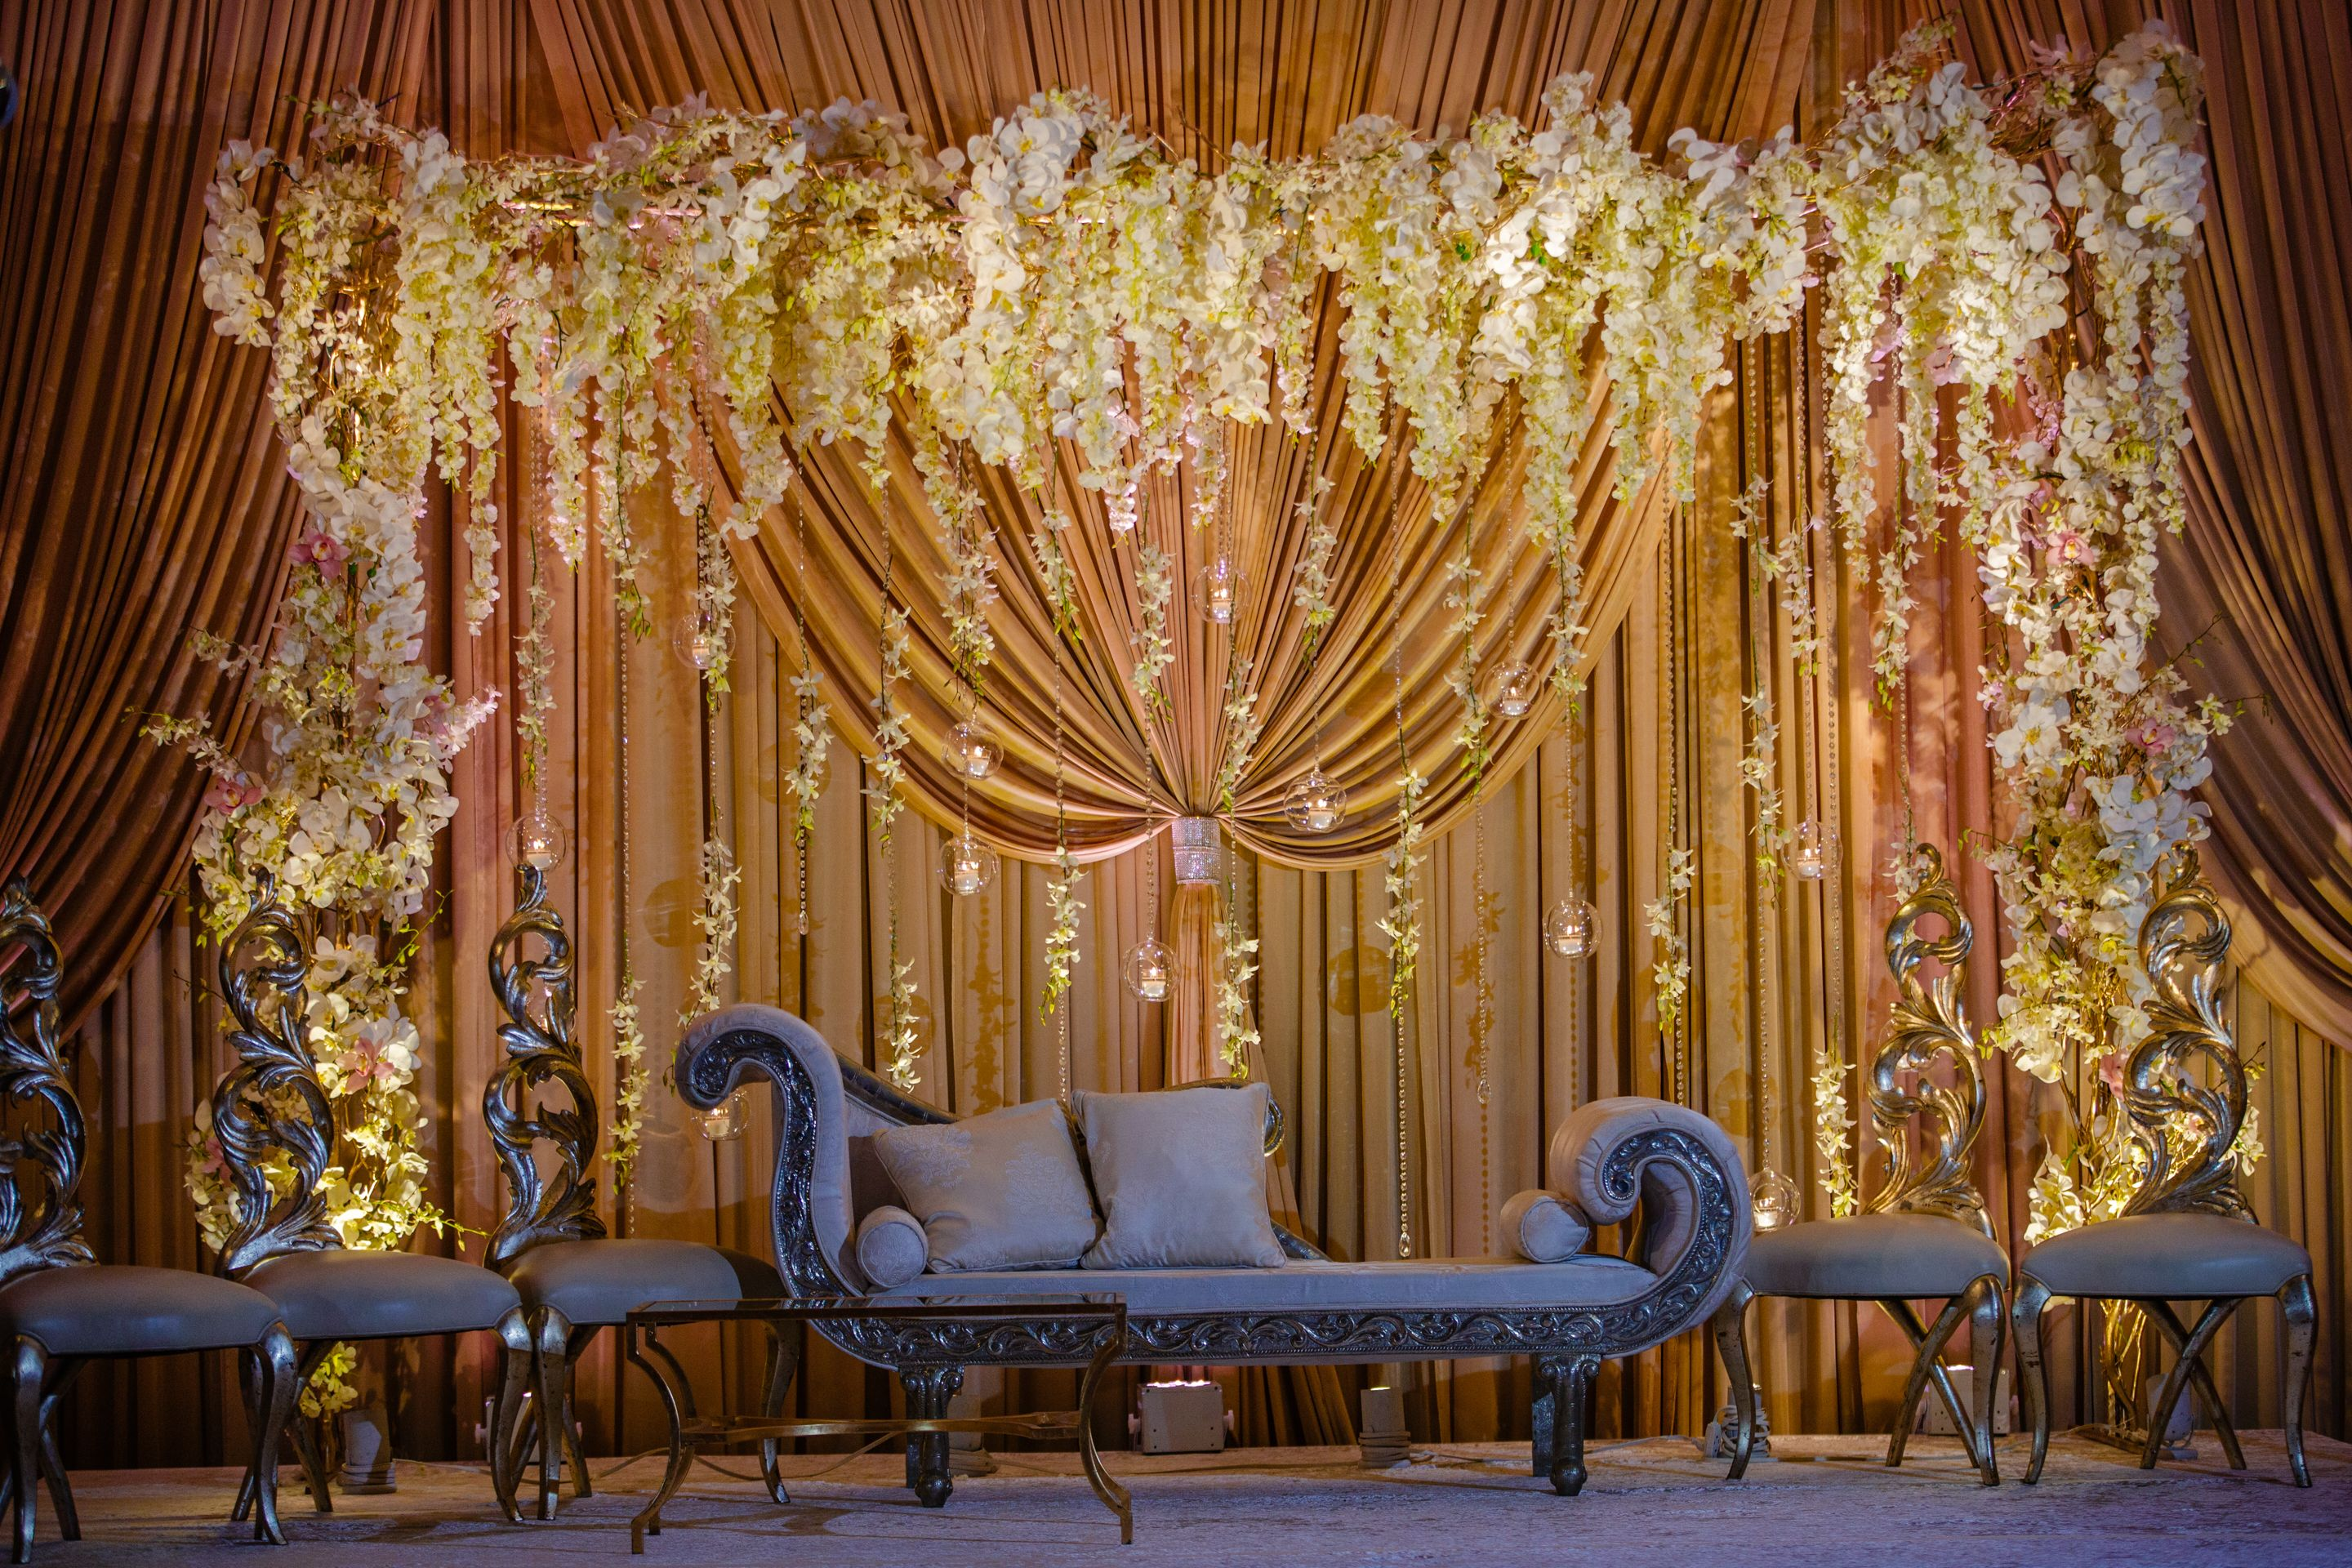 i love the draping and flowers and lights not such a fan for a